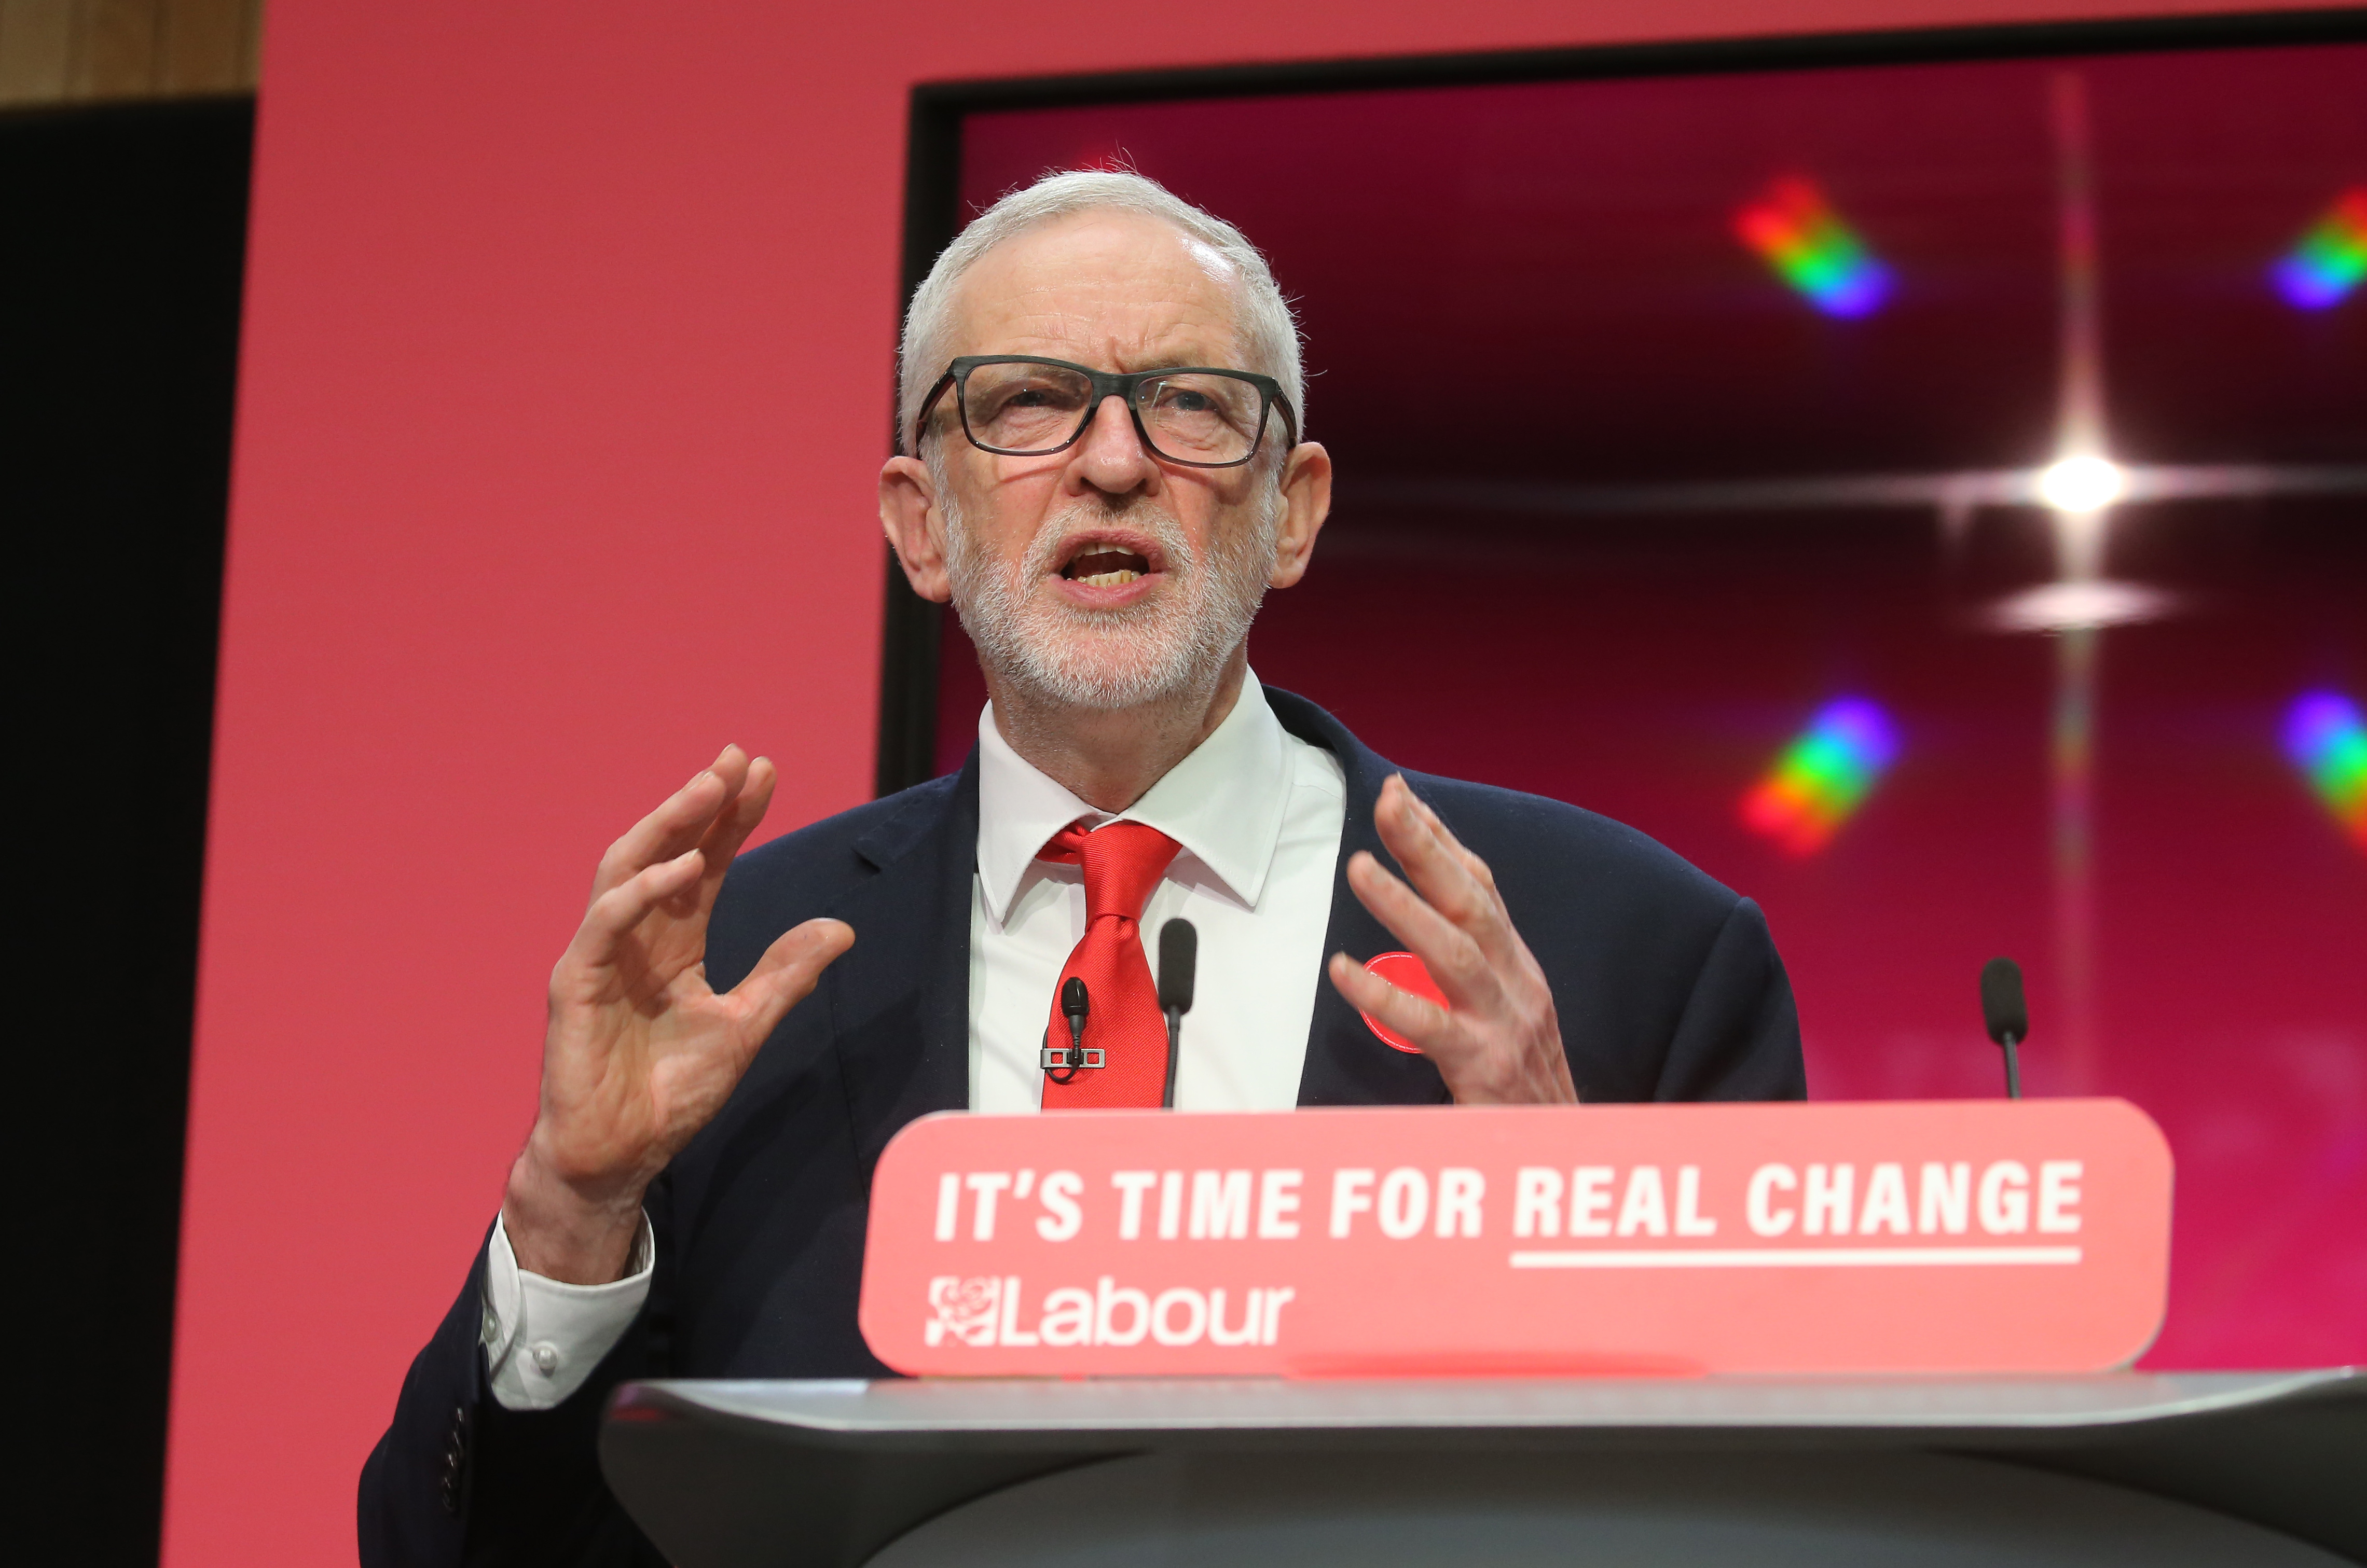 Jeremy Corbyn speaks during the launch of the Labour Party manifesto in Birmingham for the General Election. Picture dated: Thursday November 21, 2019.